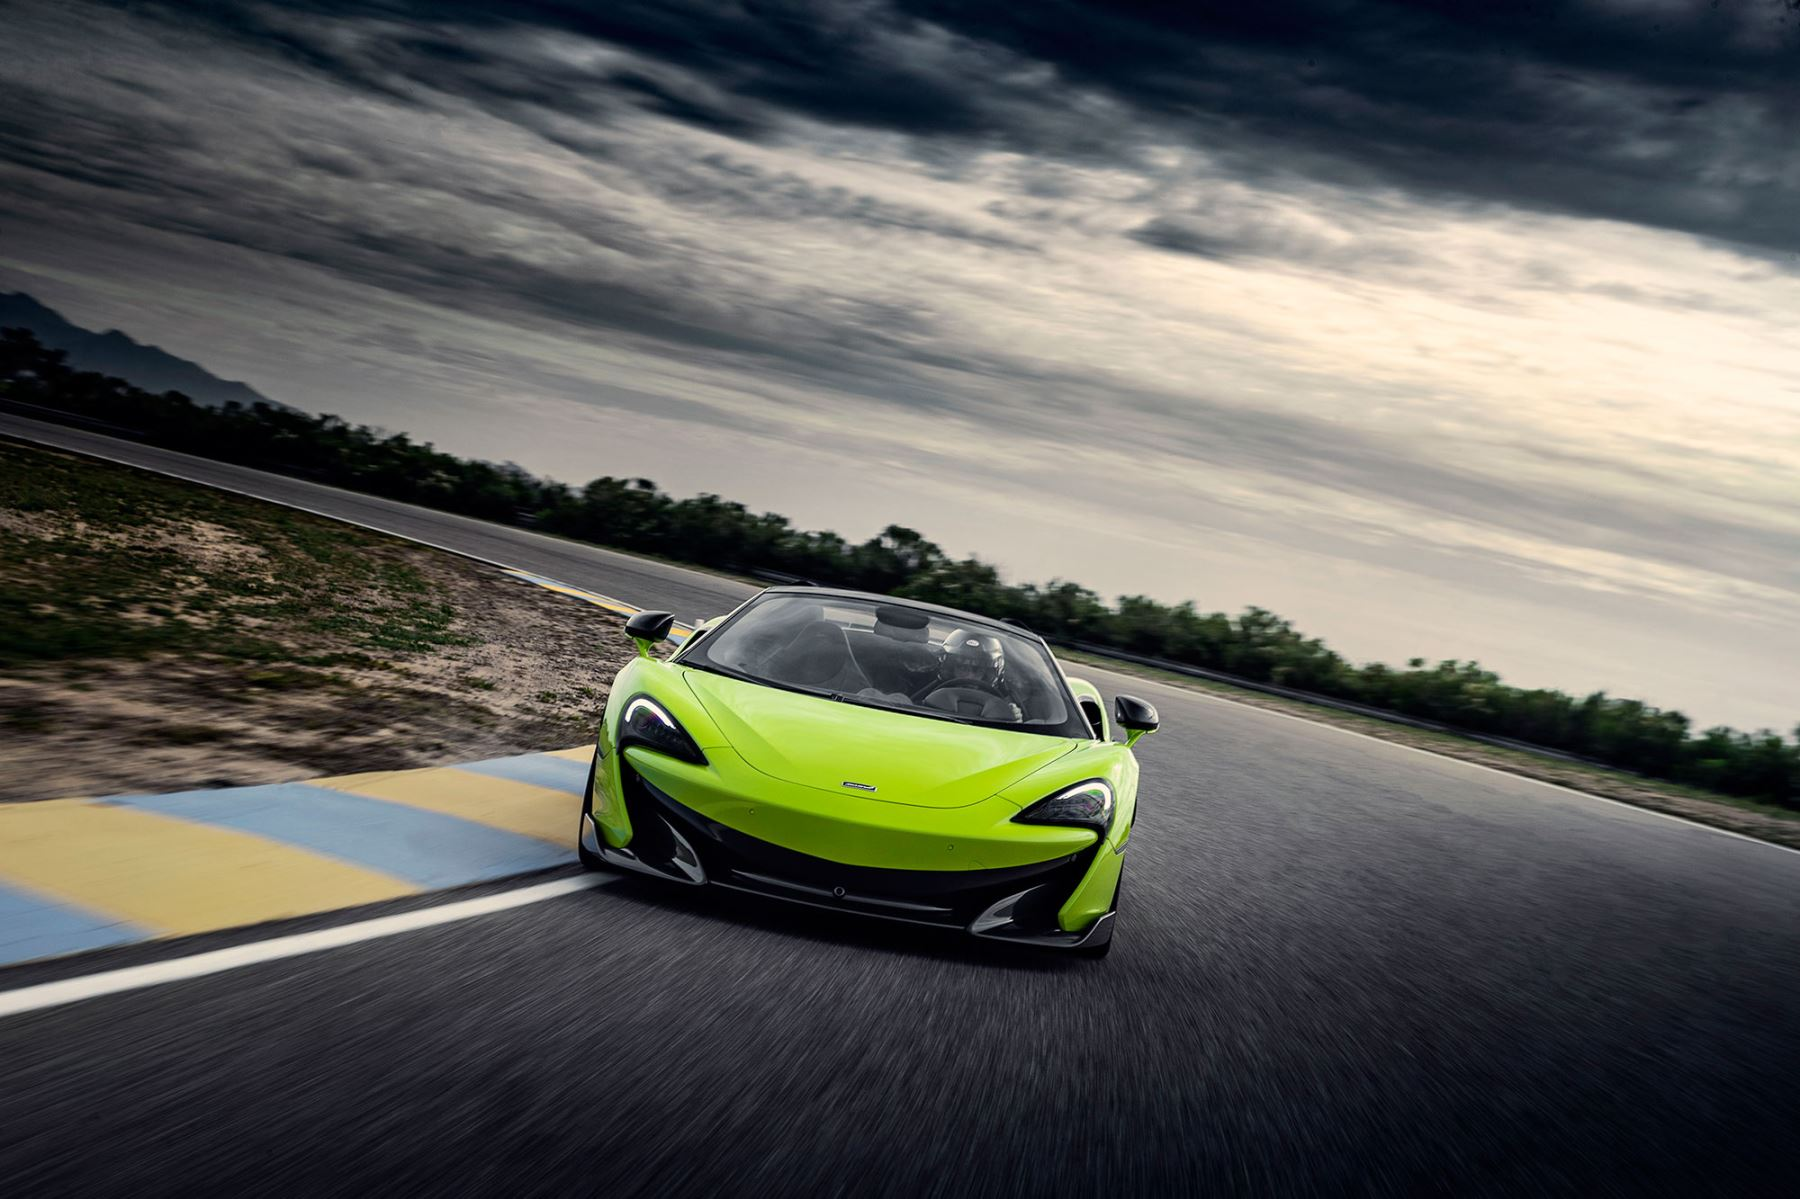 McLaren 600LT Spider - The Edge Amplified image 5